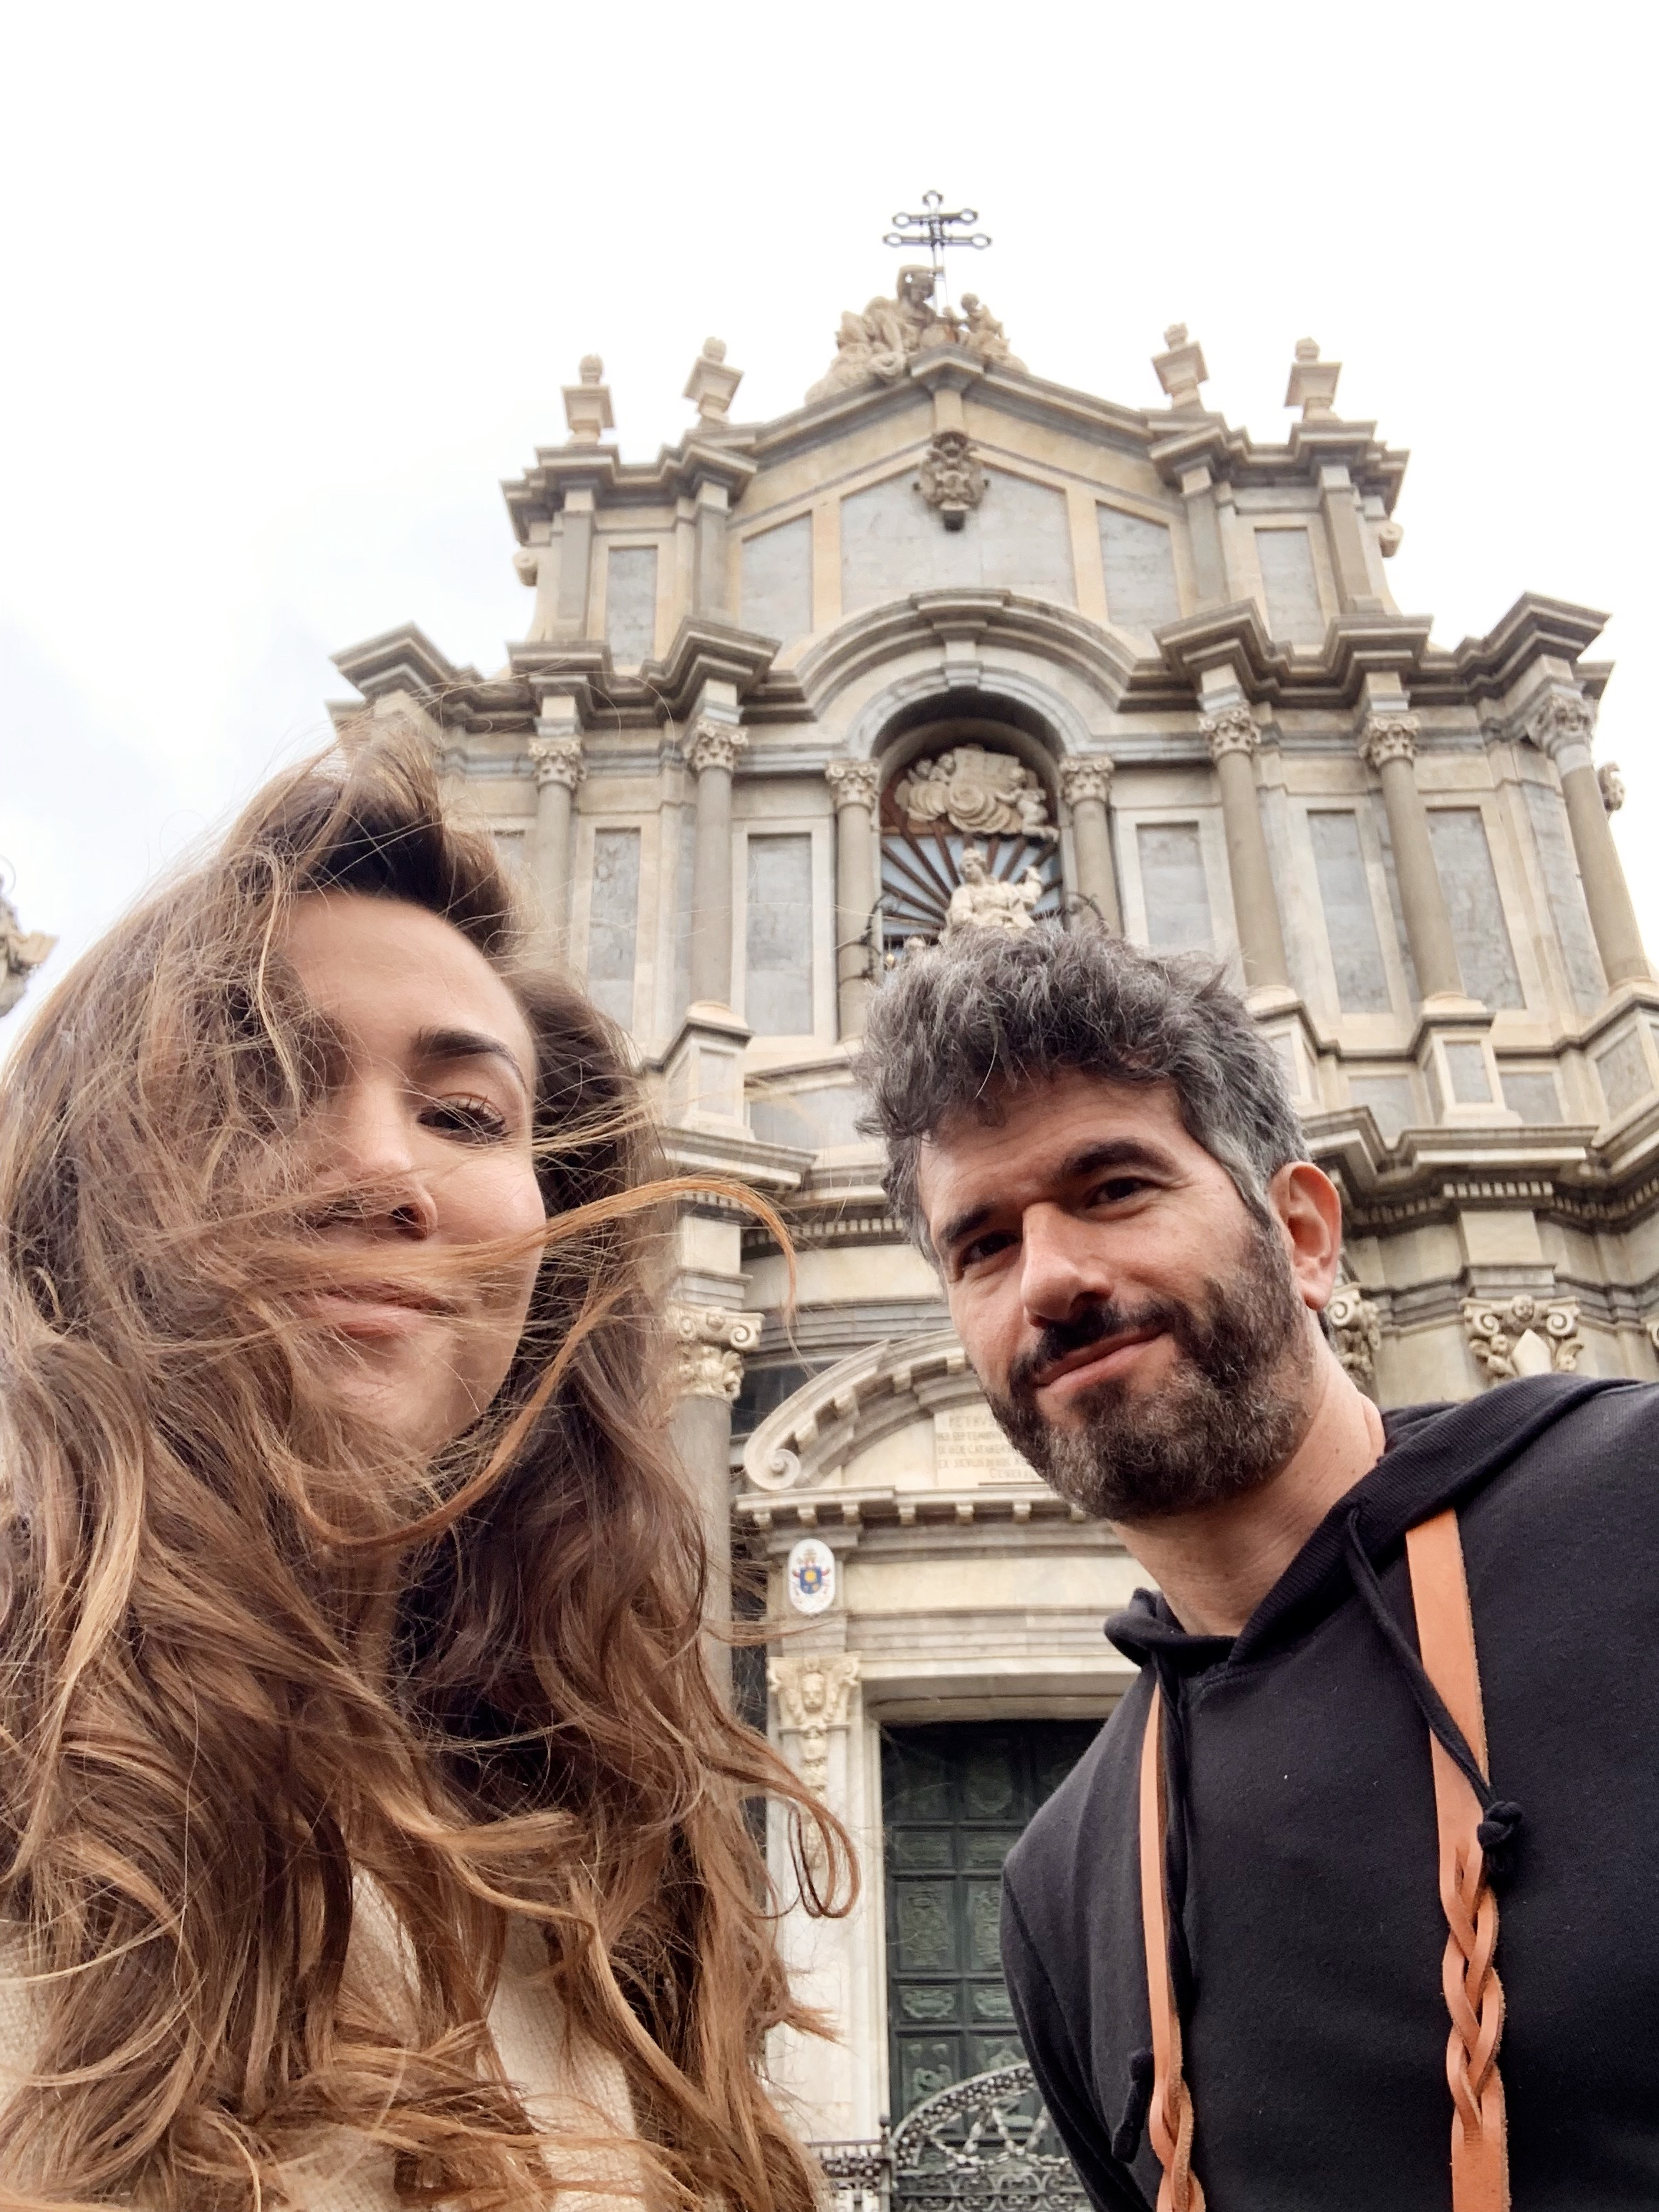 When the cathedral isn't open yet… you take a selfie in front of it. :)